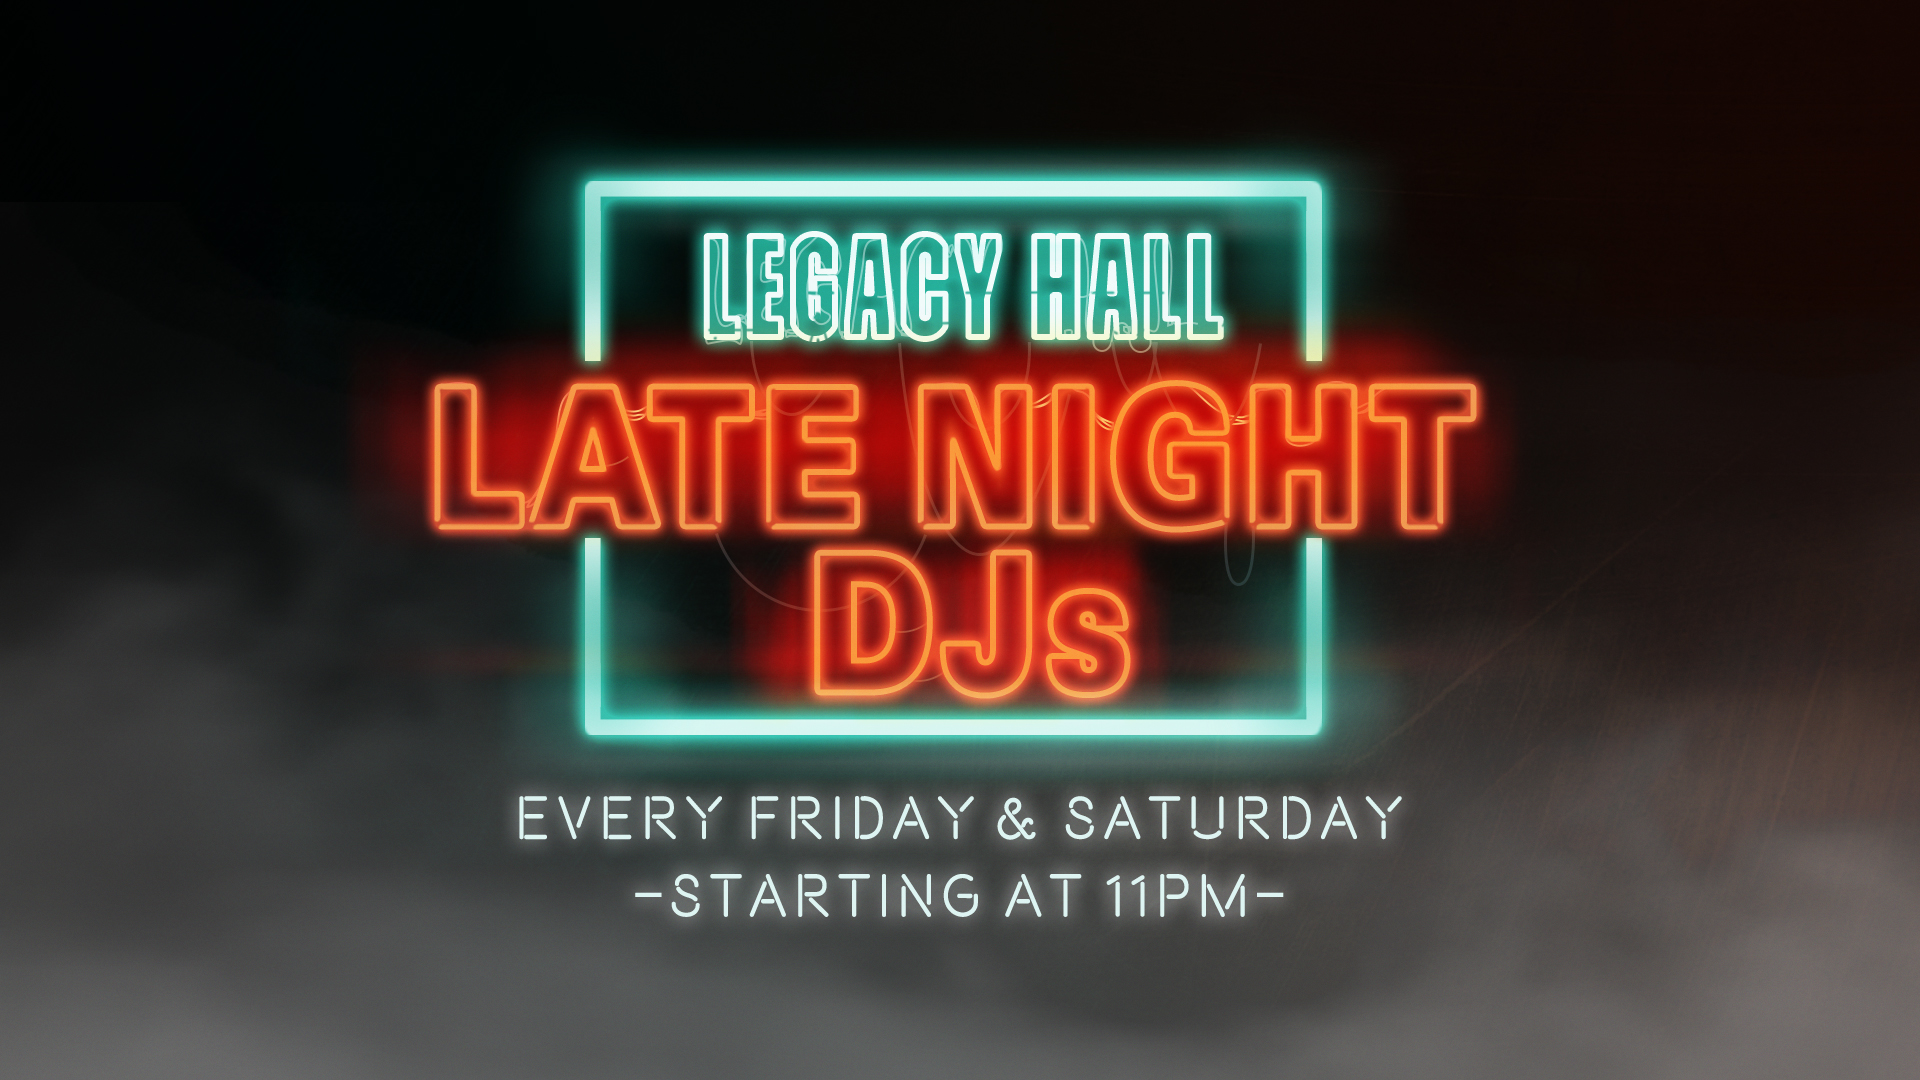 Promo image of Late Night DJ